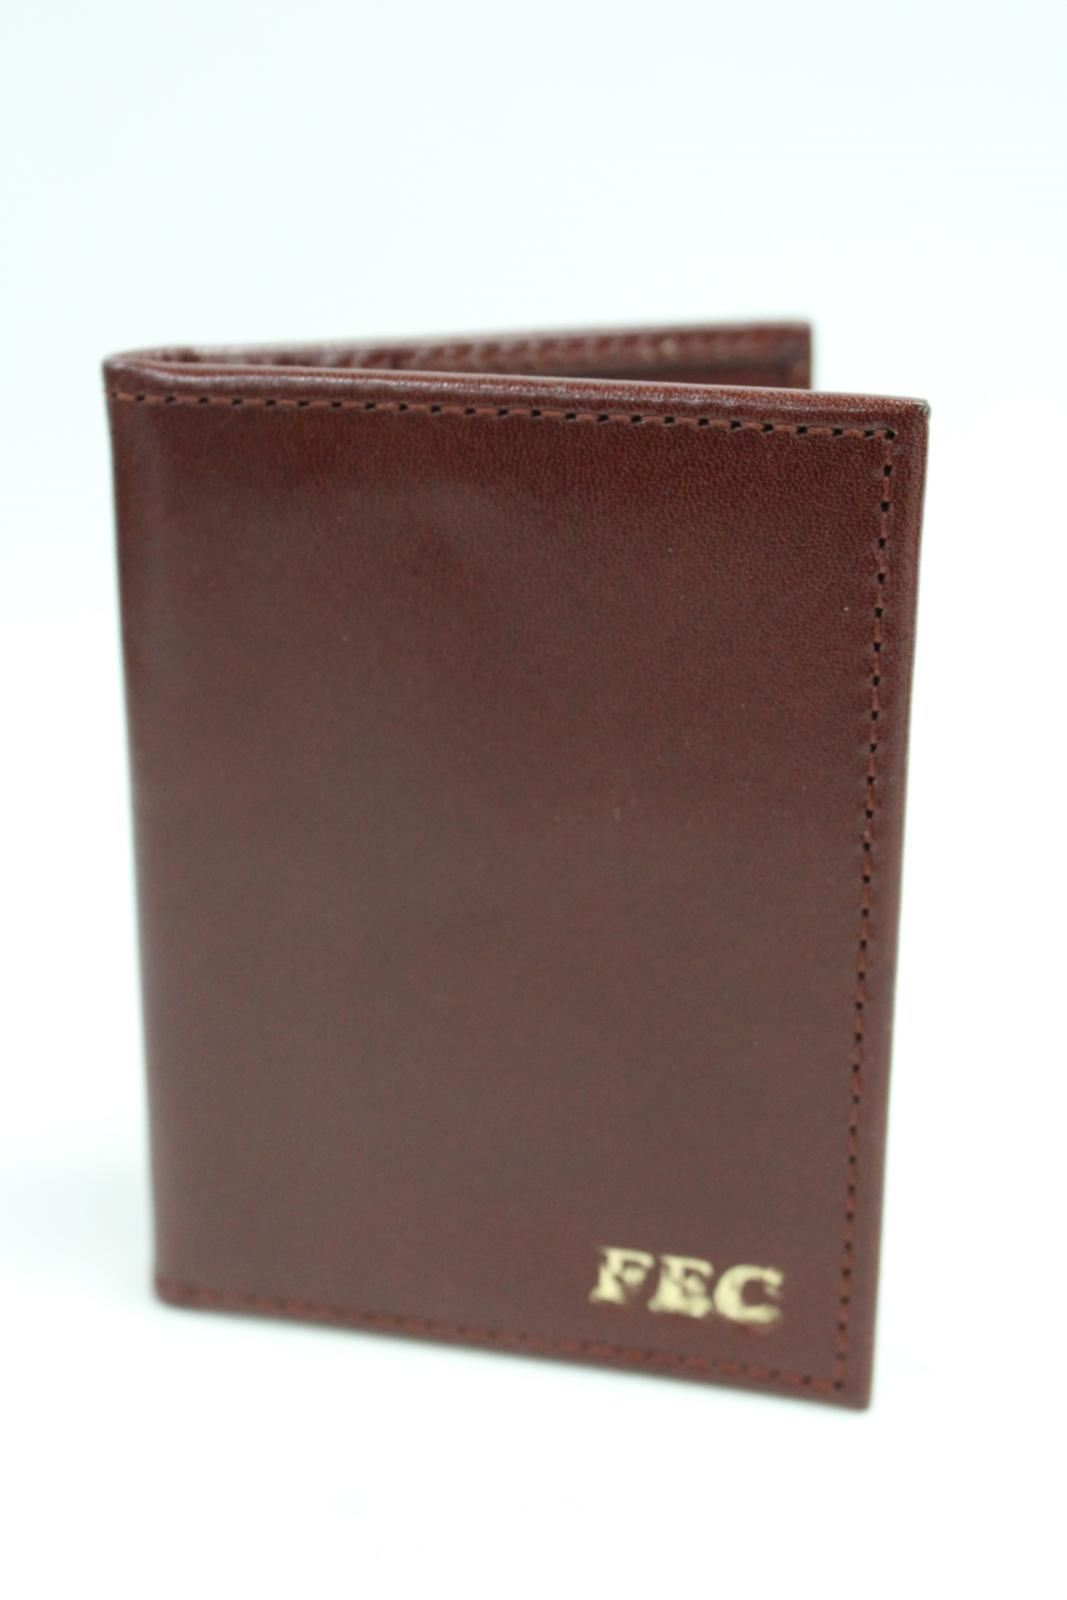 ASPINAL-OF-LONDON-Leather-ID-Bifold-3-Card-Slot-Case-Brown-Engraved-Fec-NEW